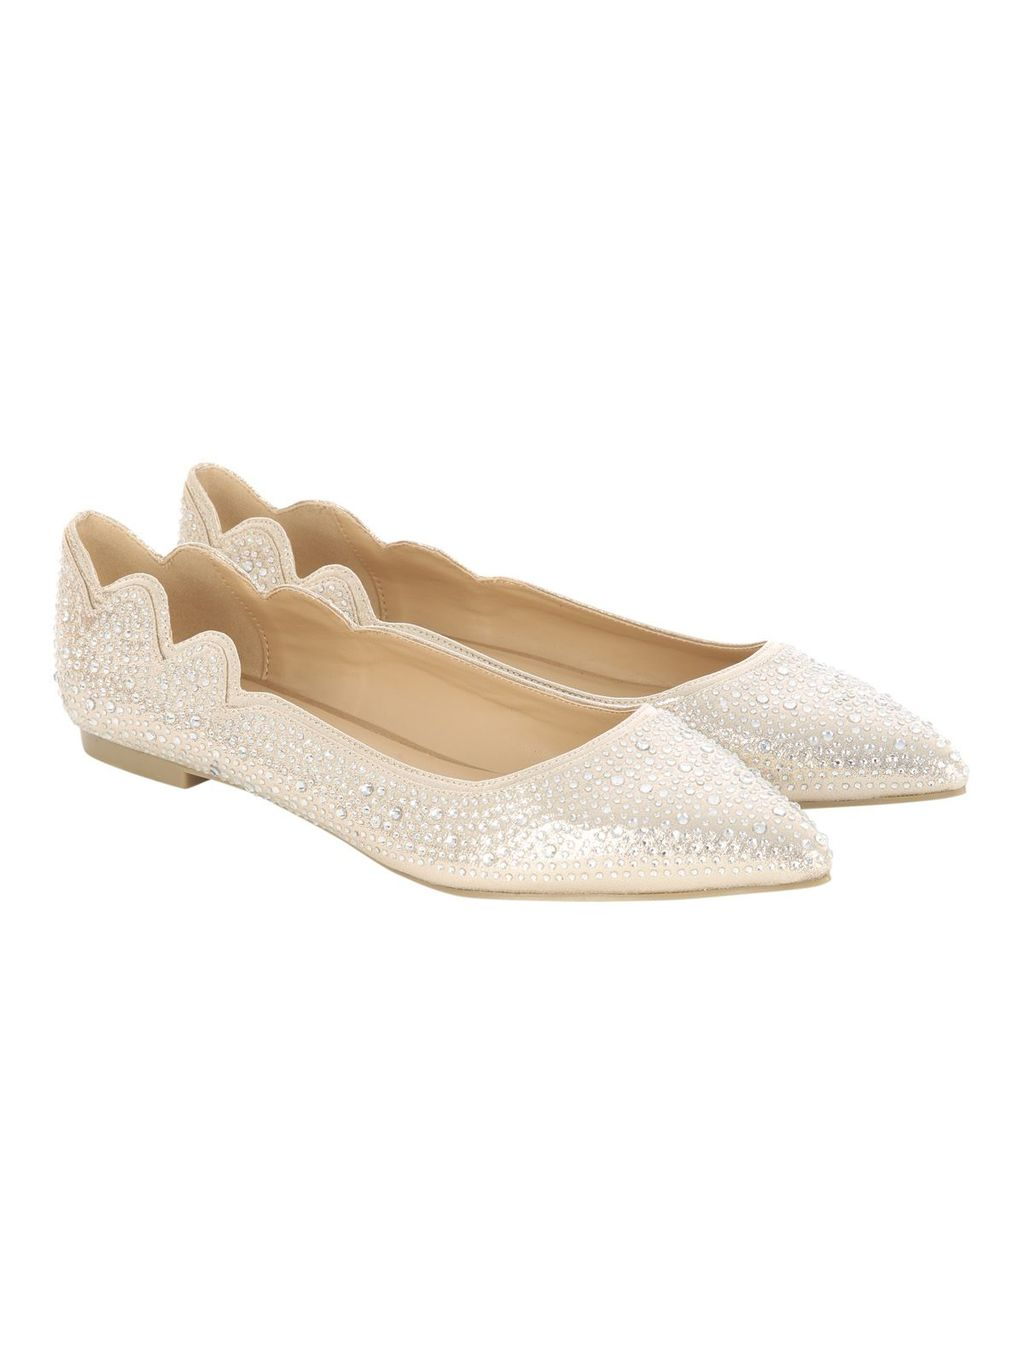 Gold Flat Point Diamante Shoe, Gold - predominant colour: ivory/cream; occasions: occasion; material: satin; heel height: flat; embellishment: crystals/glass; toe: pointed toe; style: ballerinas / pumps; finish: plain; pattern: paisley; season: s/s 2016